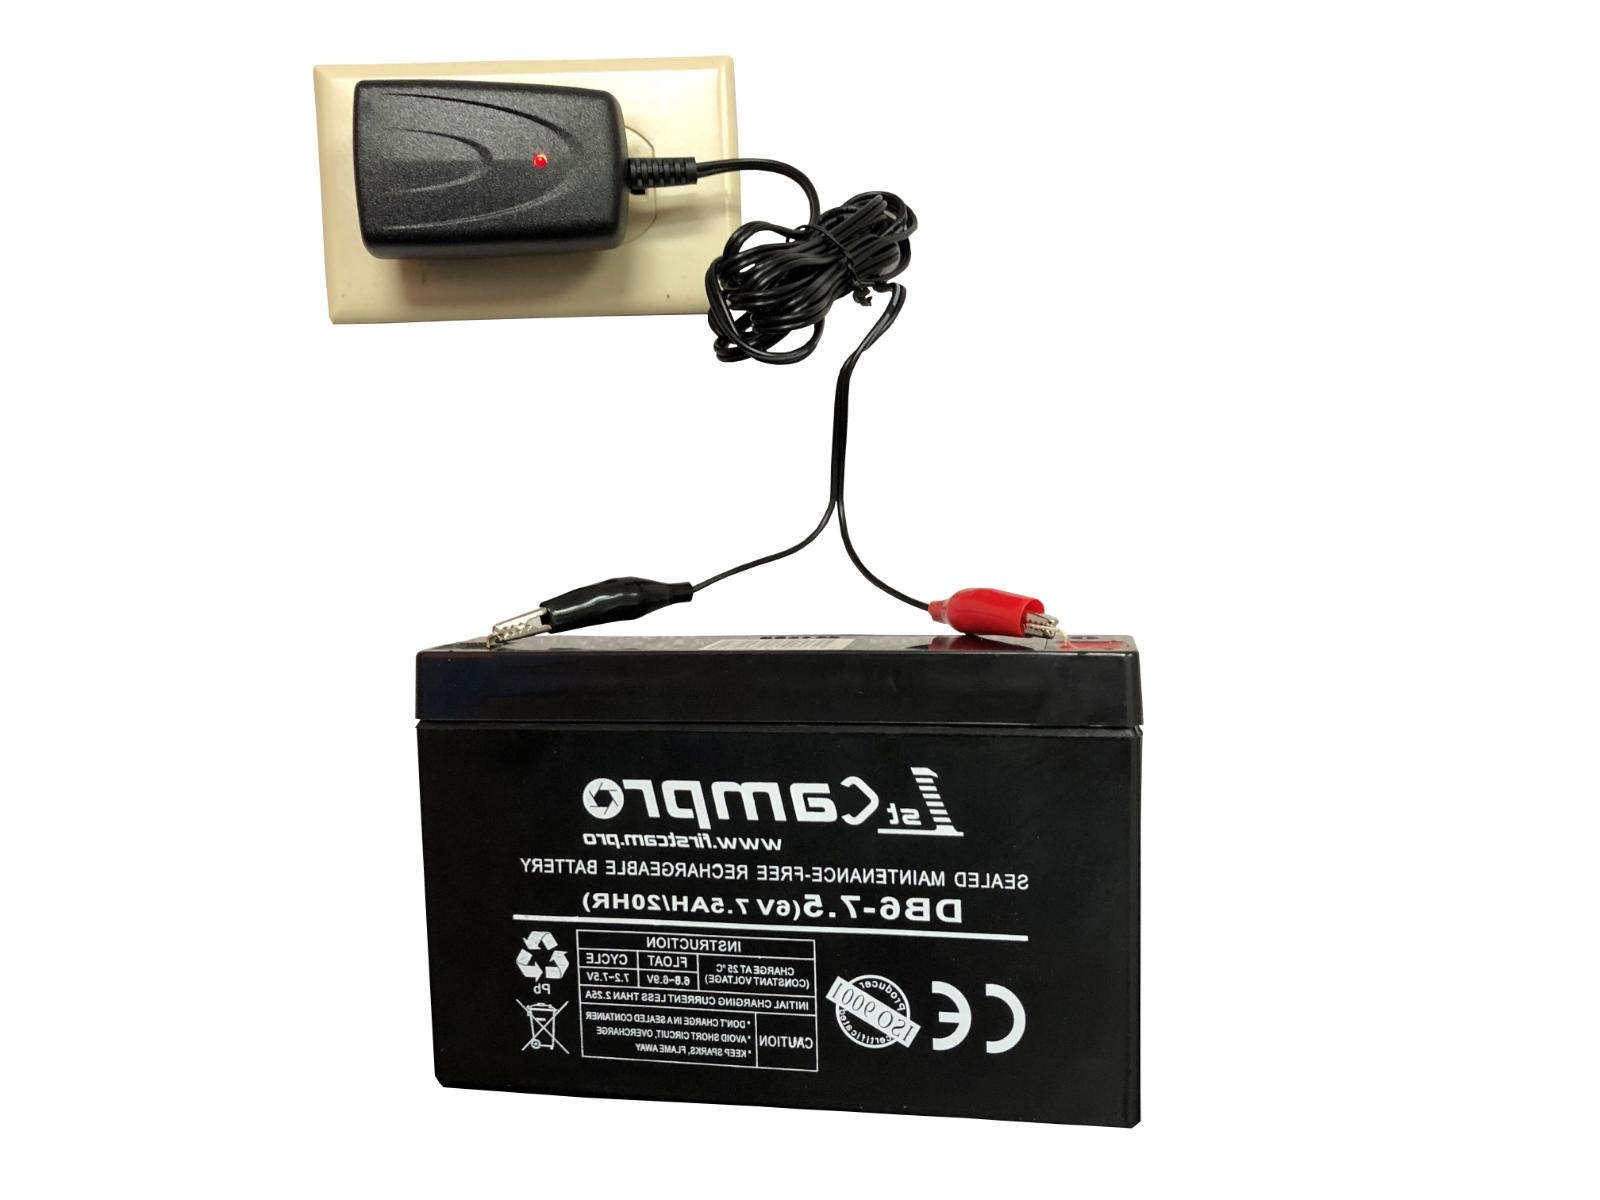 1stCamPro Power Battery, Charger, Cable- Trail Camera